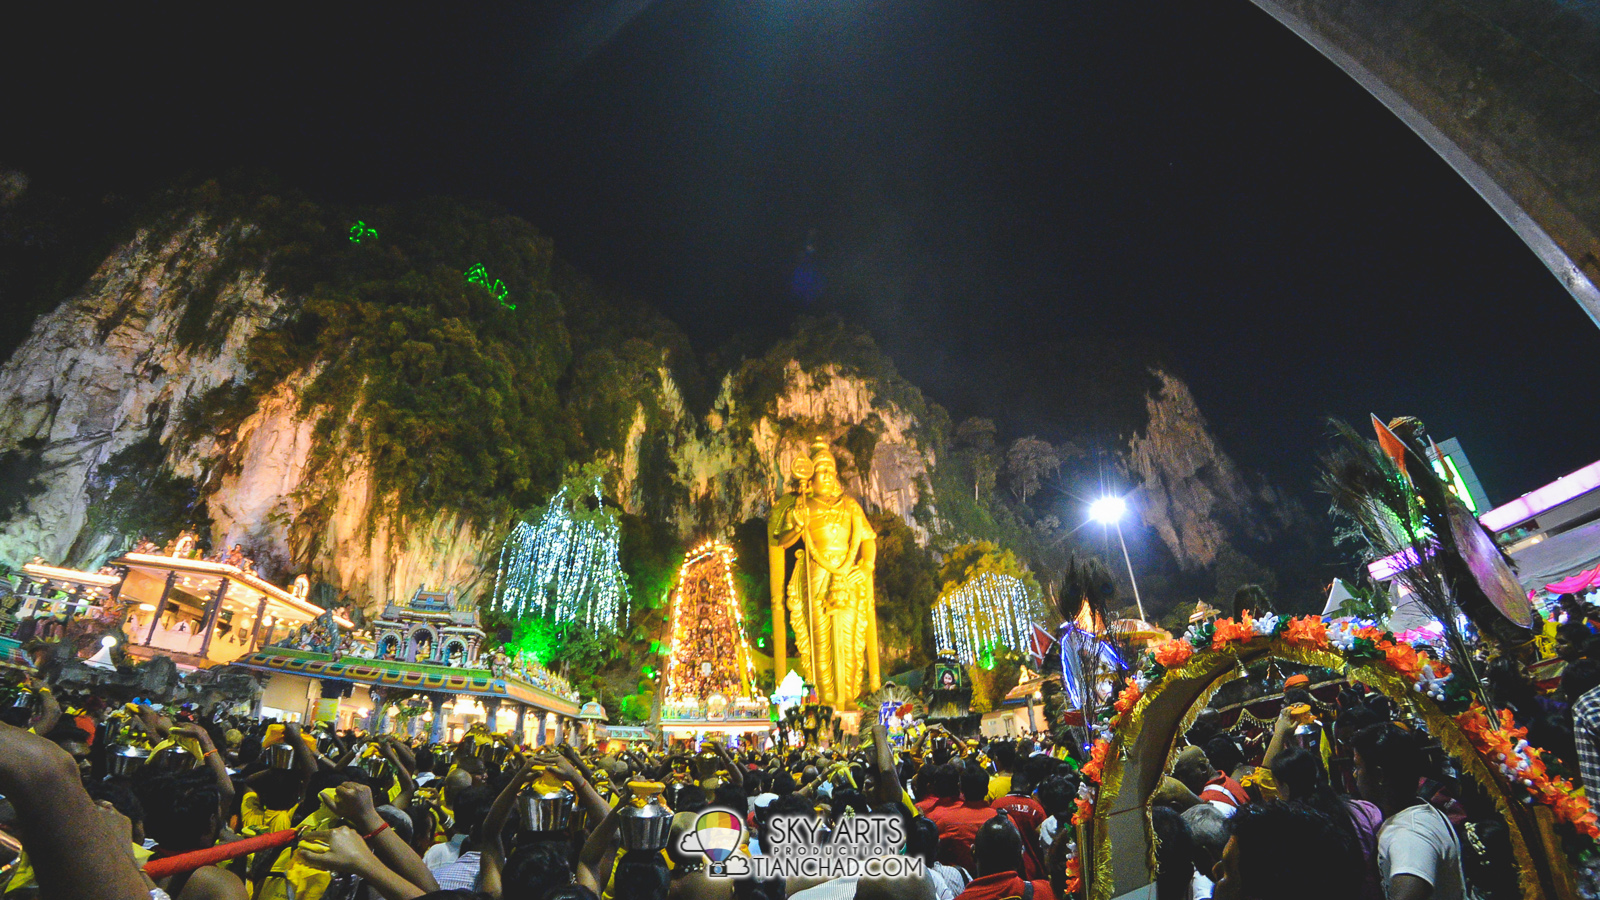 Fisheye view of Batu Caves with the Golden Statue and people mountain people sea World's tallest statue of the Hindu deity Lord Murugan